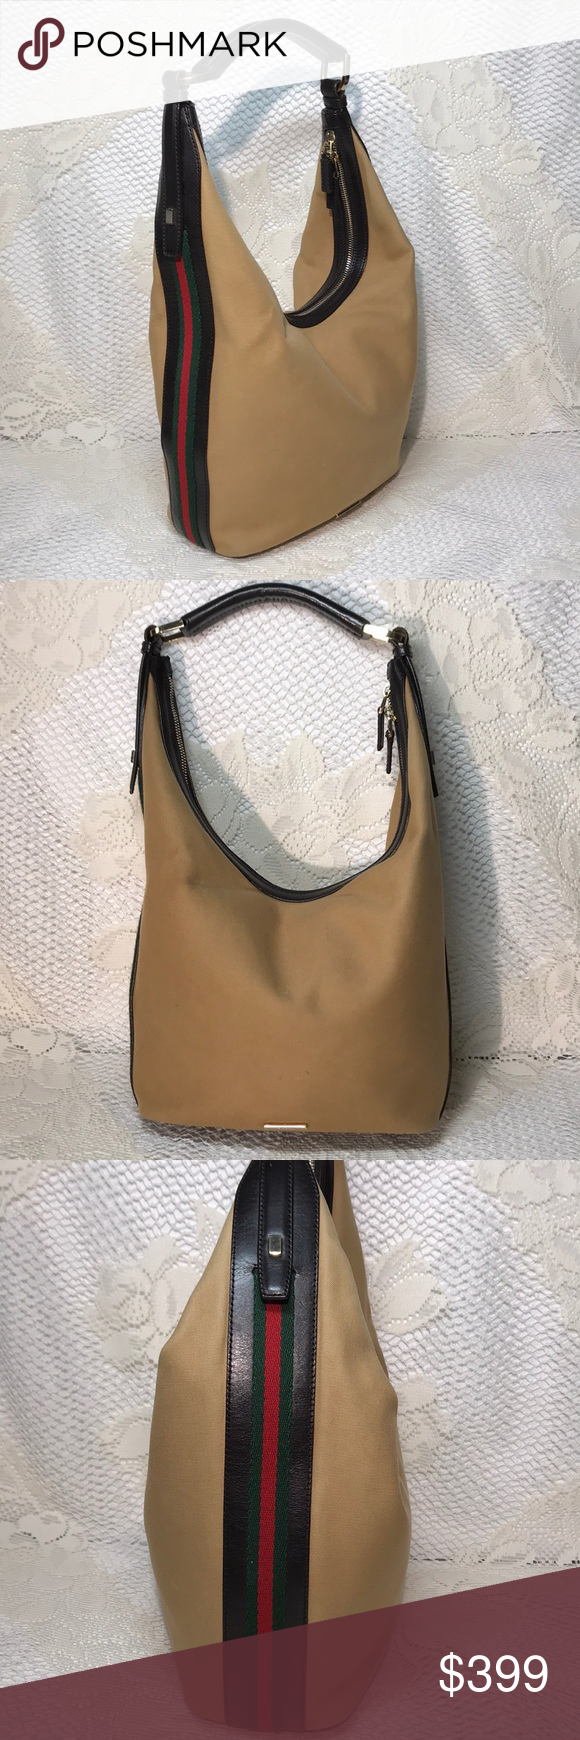 15f0bebf0fb0 Gucci Handbag Gucci Catawiki Hobo Shoulder Bag Very gently worn Catawiki  brown leather and tan canvas